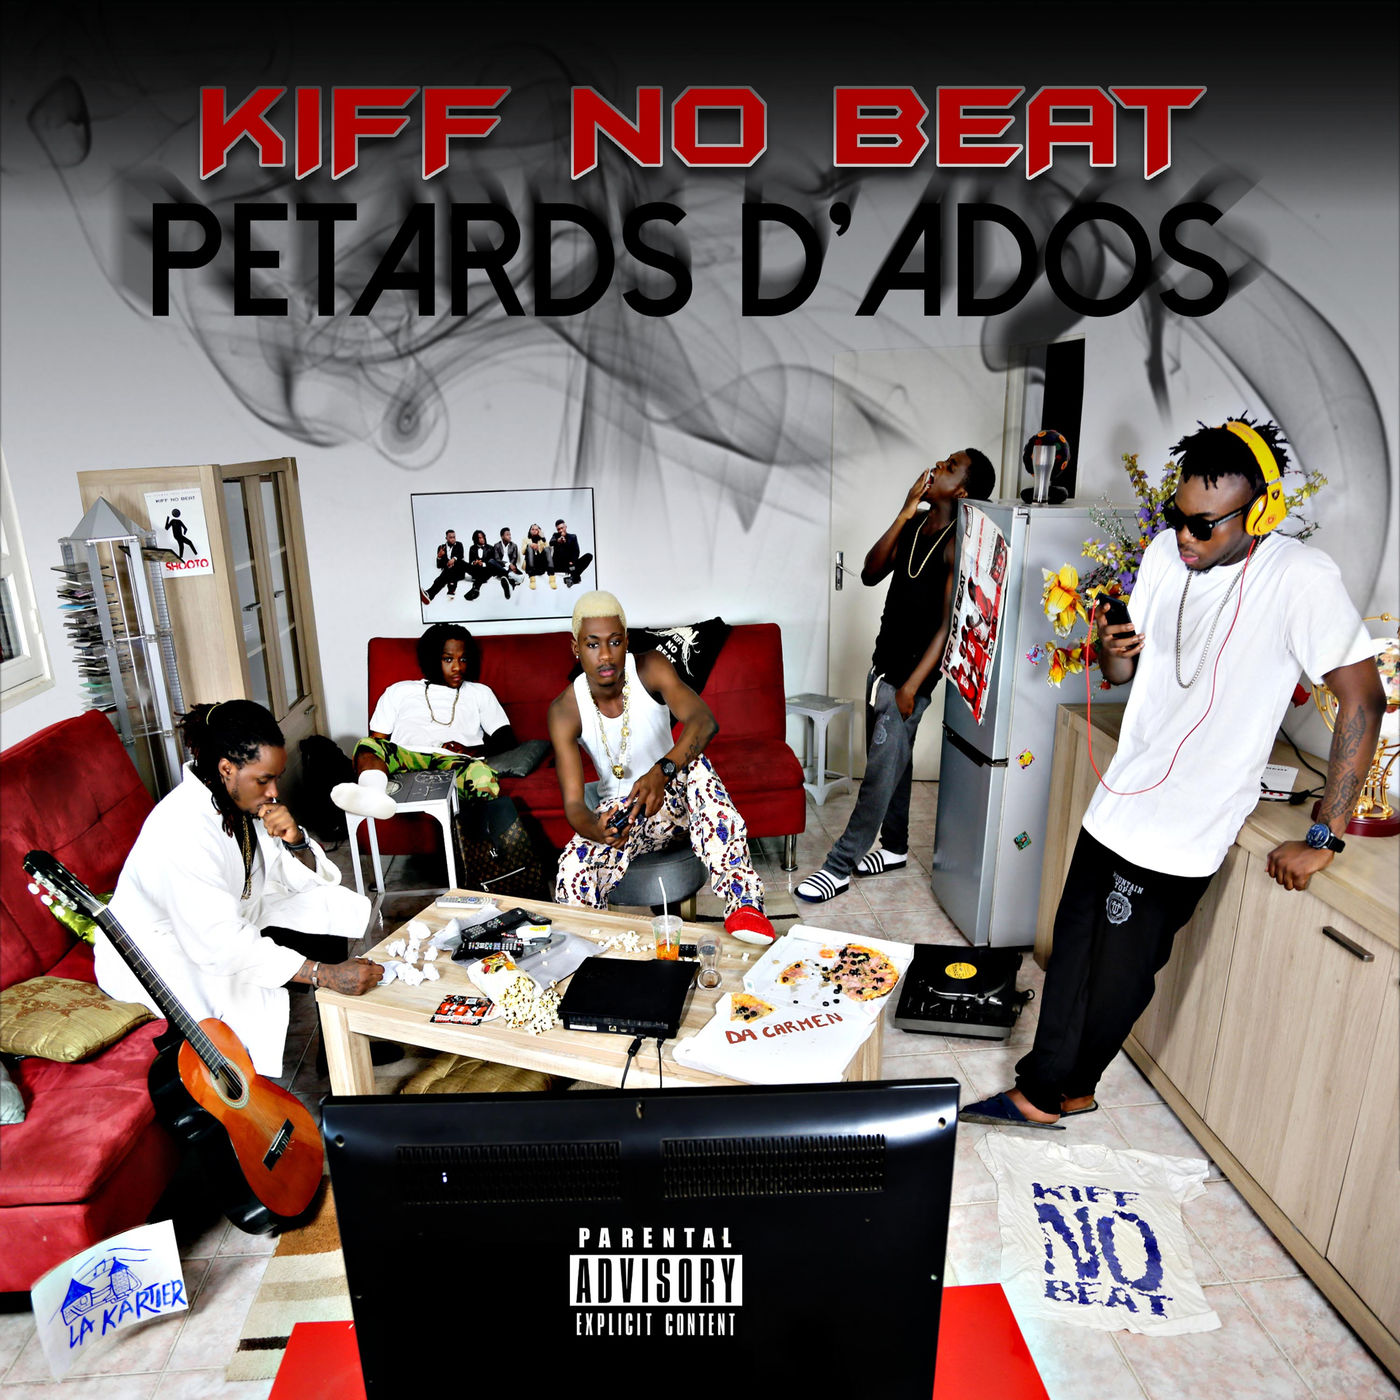 Cover Kiff No Beat - Pétards d_'ados